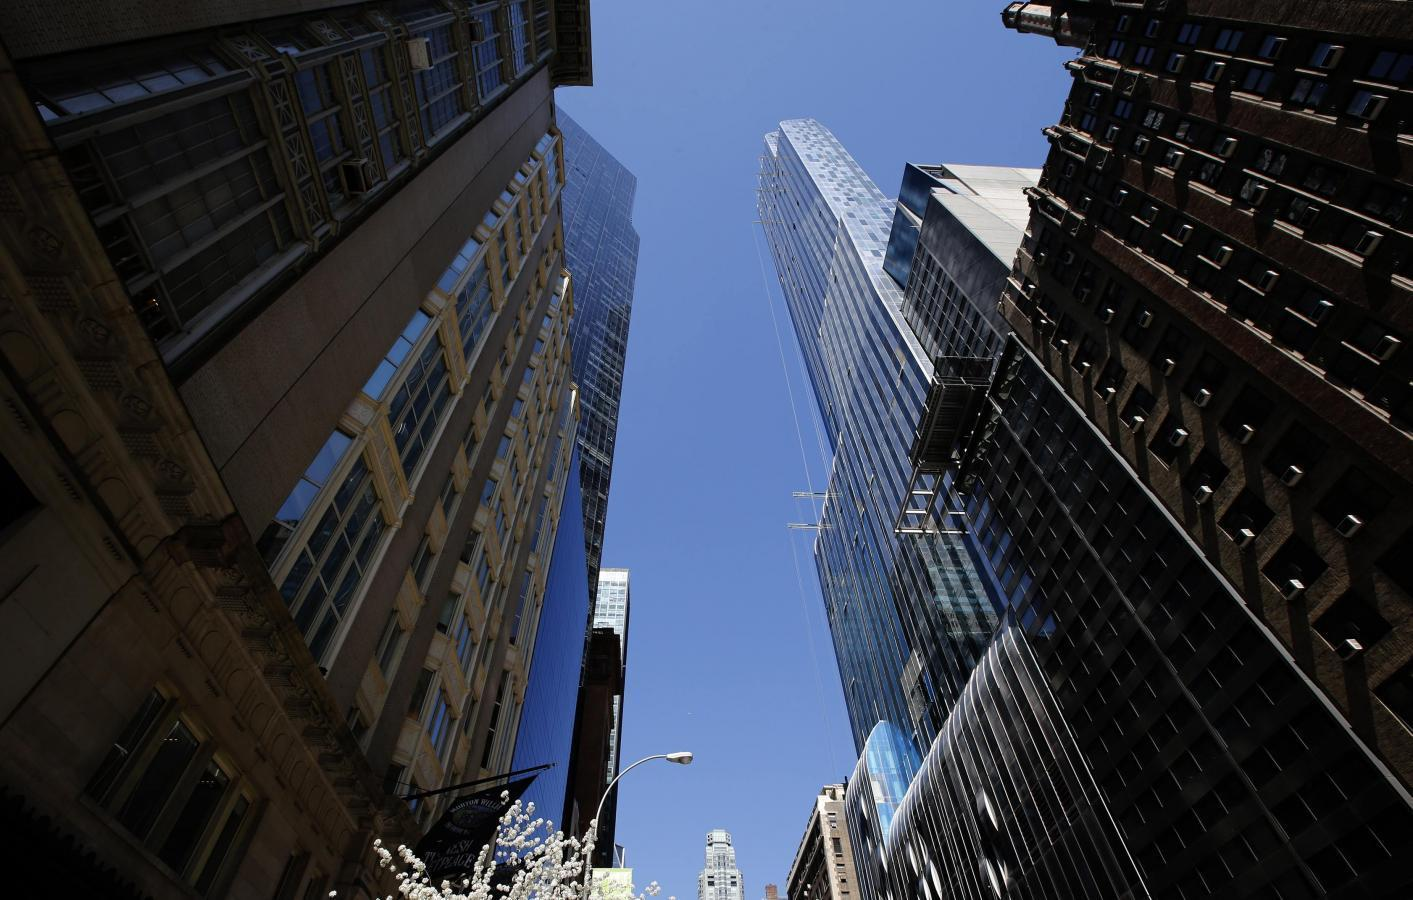 The Chinese take Manhattan: replace Russians as top apartment buyers